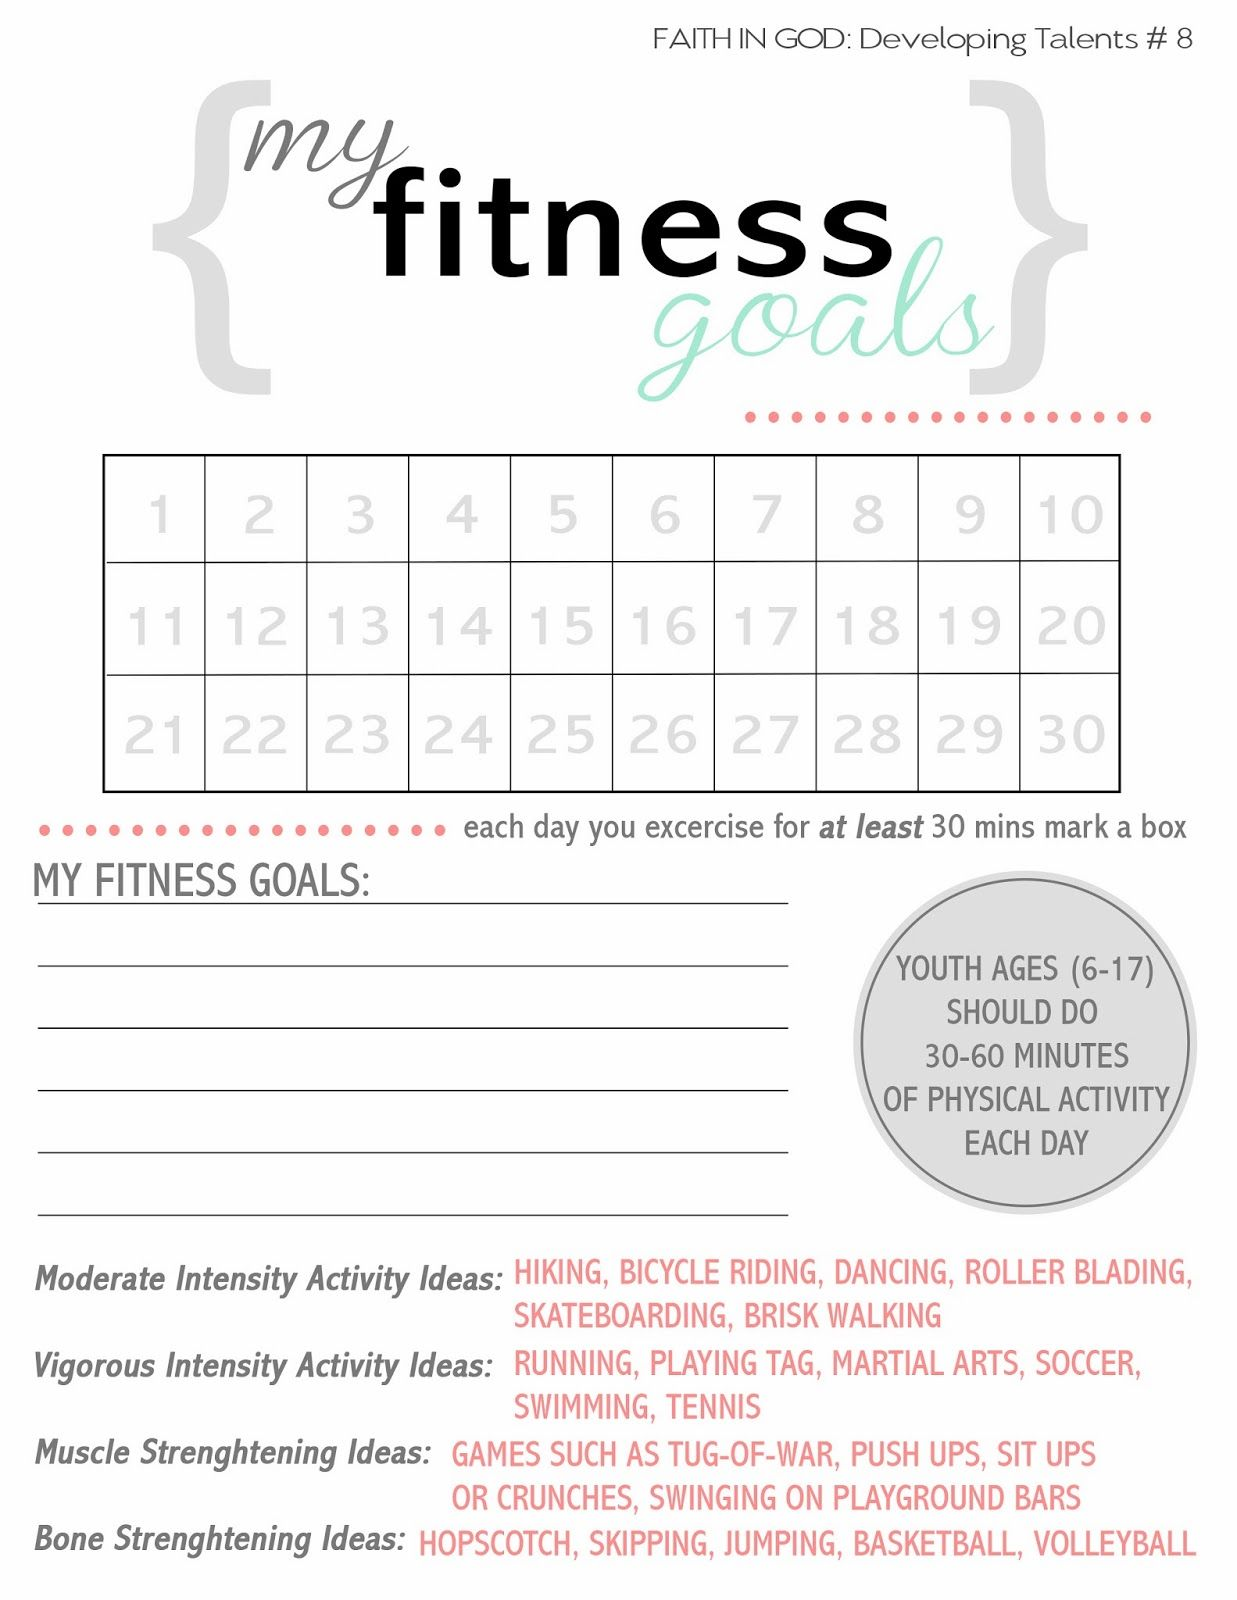 The Hill Family Activity Days Fitness Goals Printable Faith In God Body Is A Temple